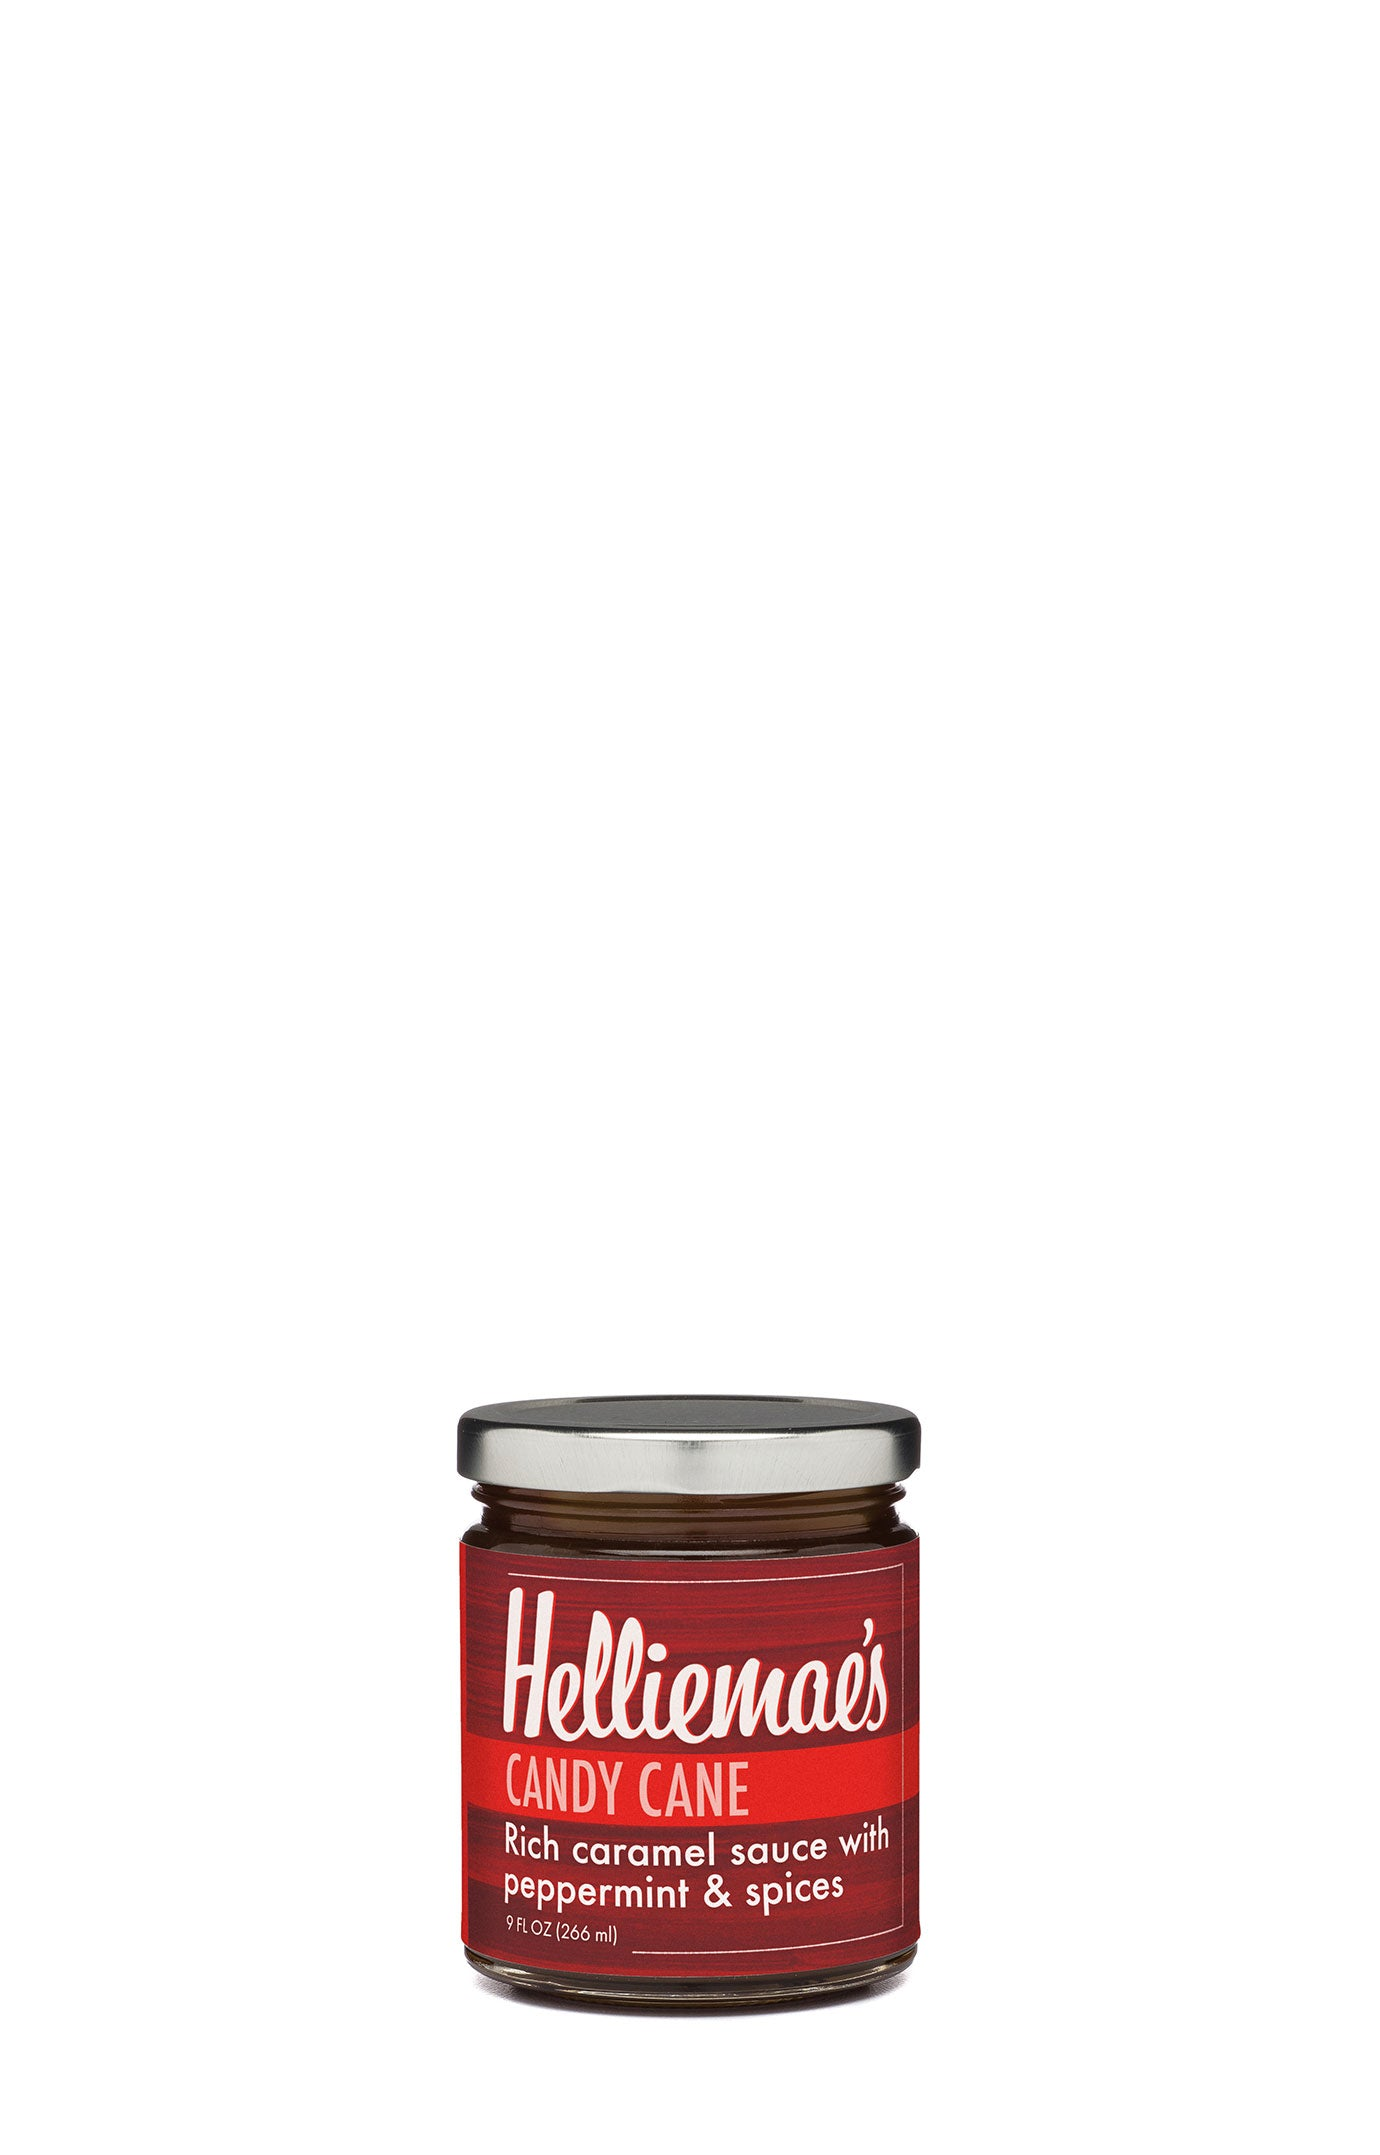 Helliemae's Candy Cane Caramel sauce, clear straight-sided jar with silver lid and colorful red label, with effect of milk paint on a barn wall.